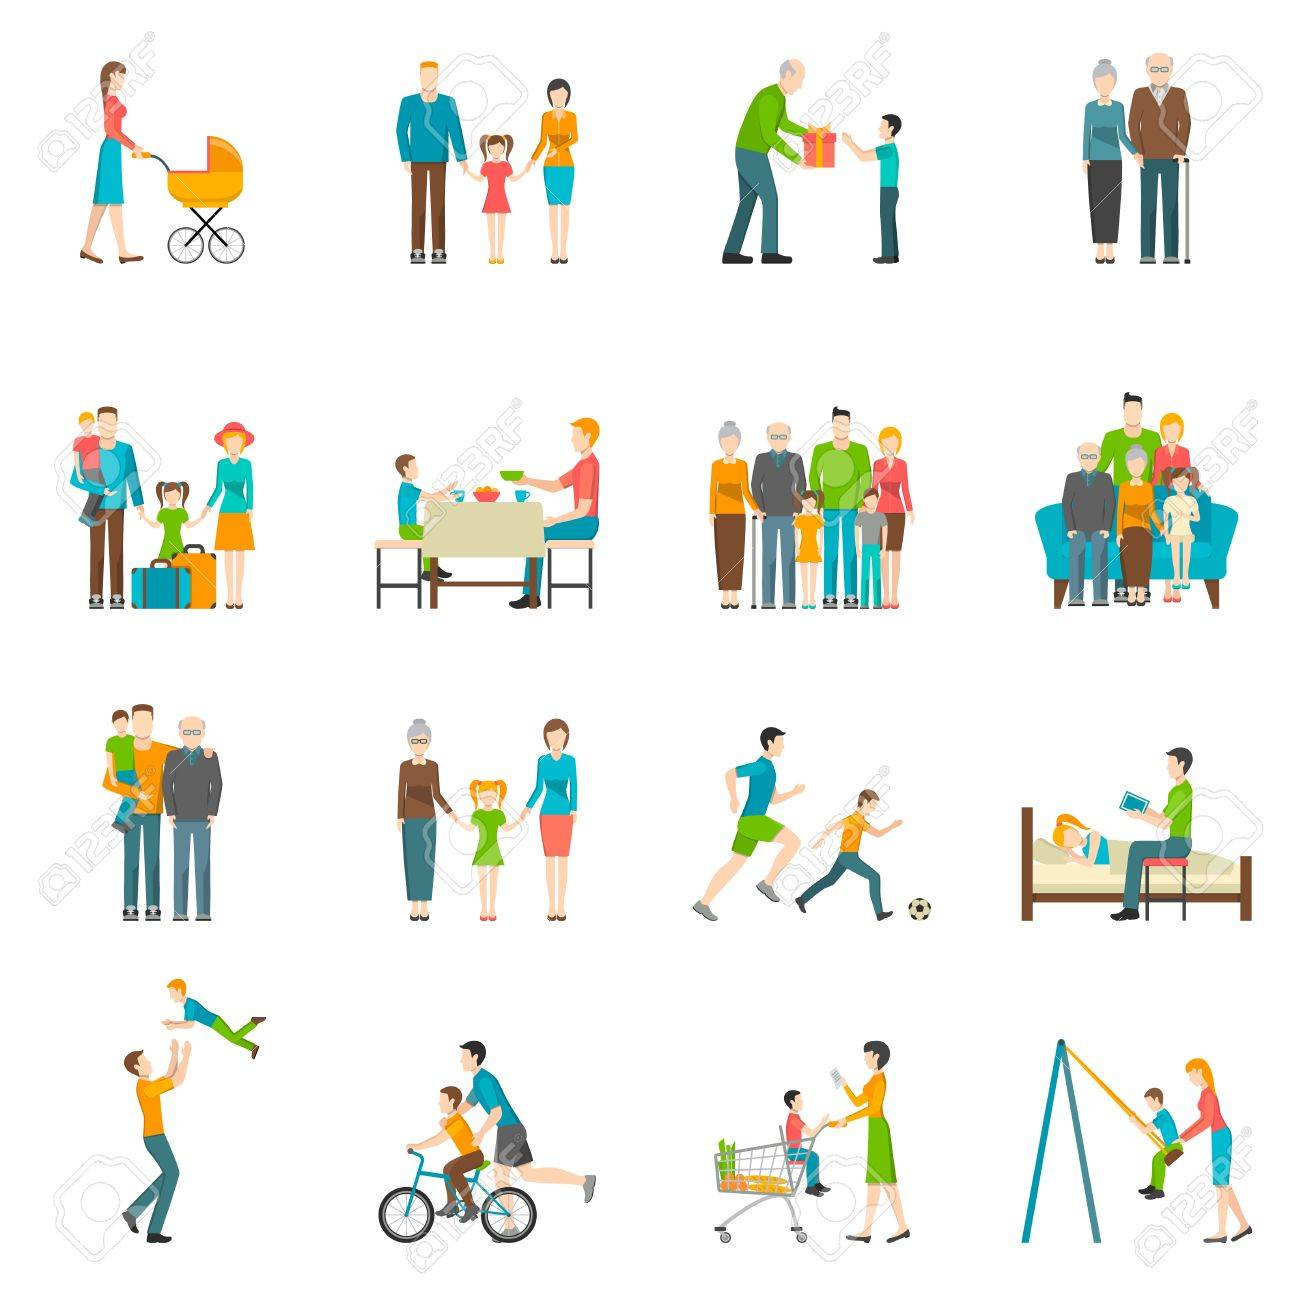 Set of icons with white background depicting moments of happy family life vector illustration - 54689562